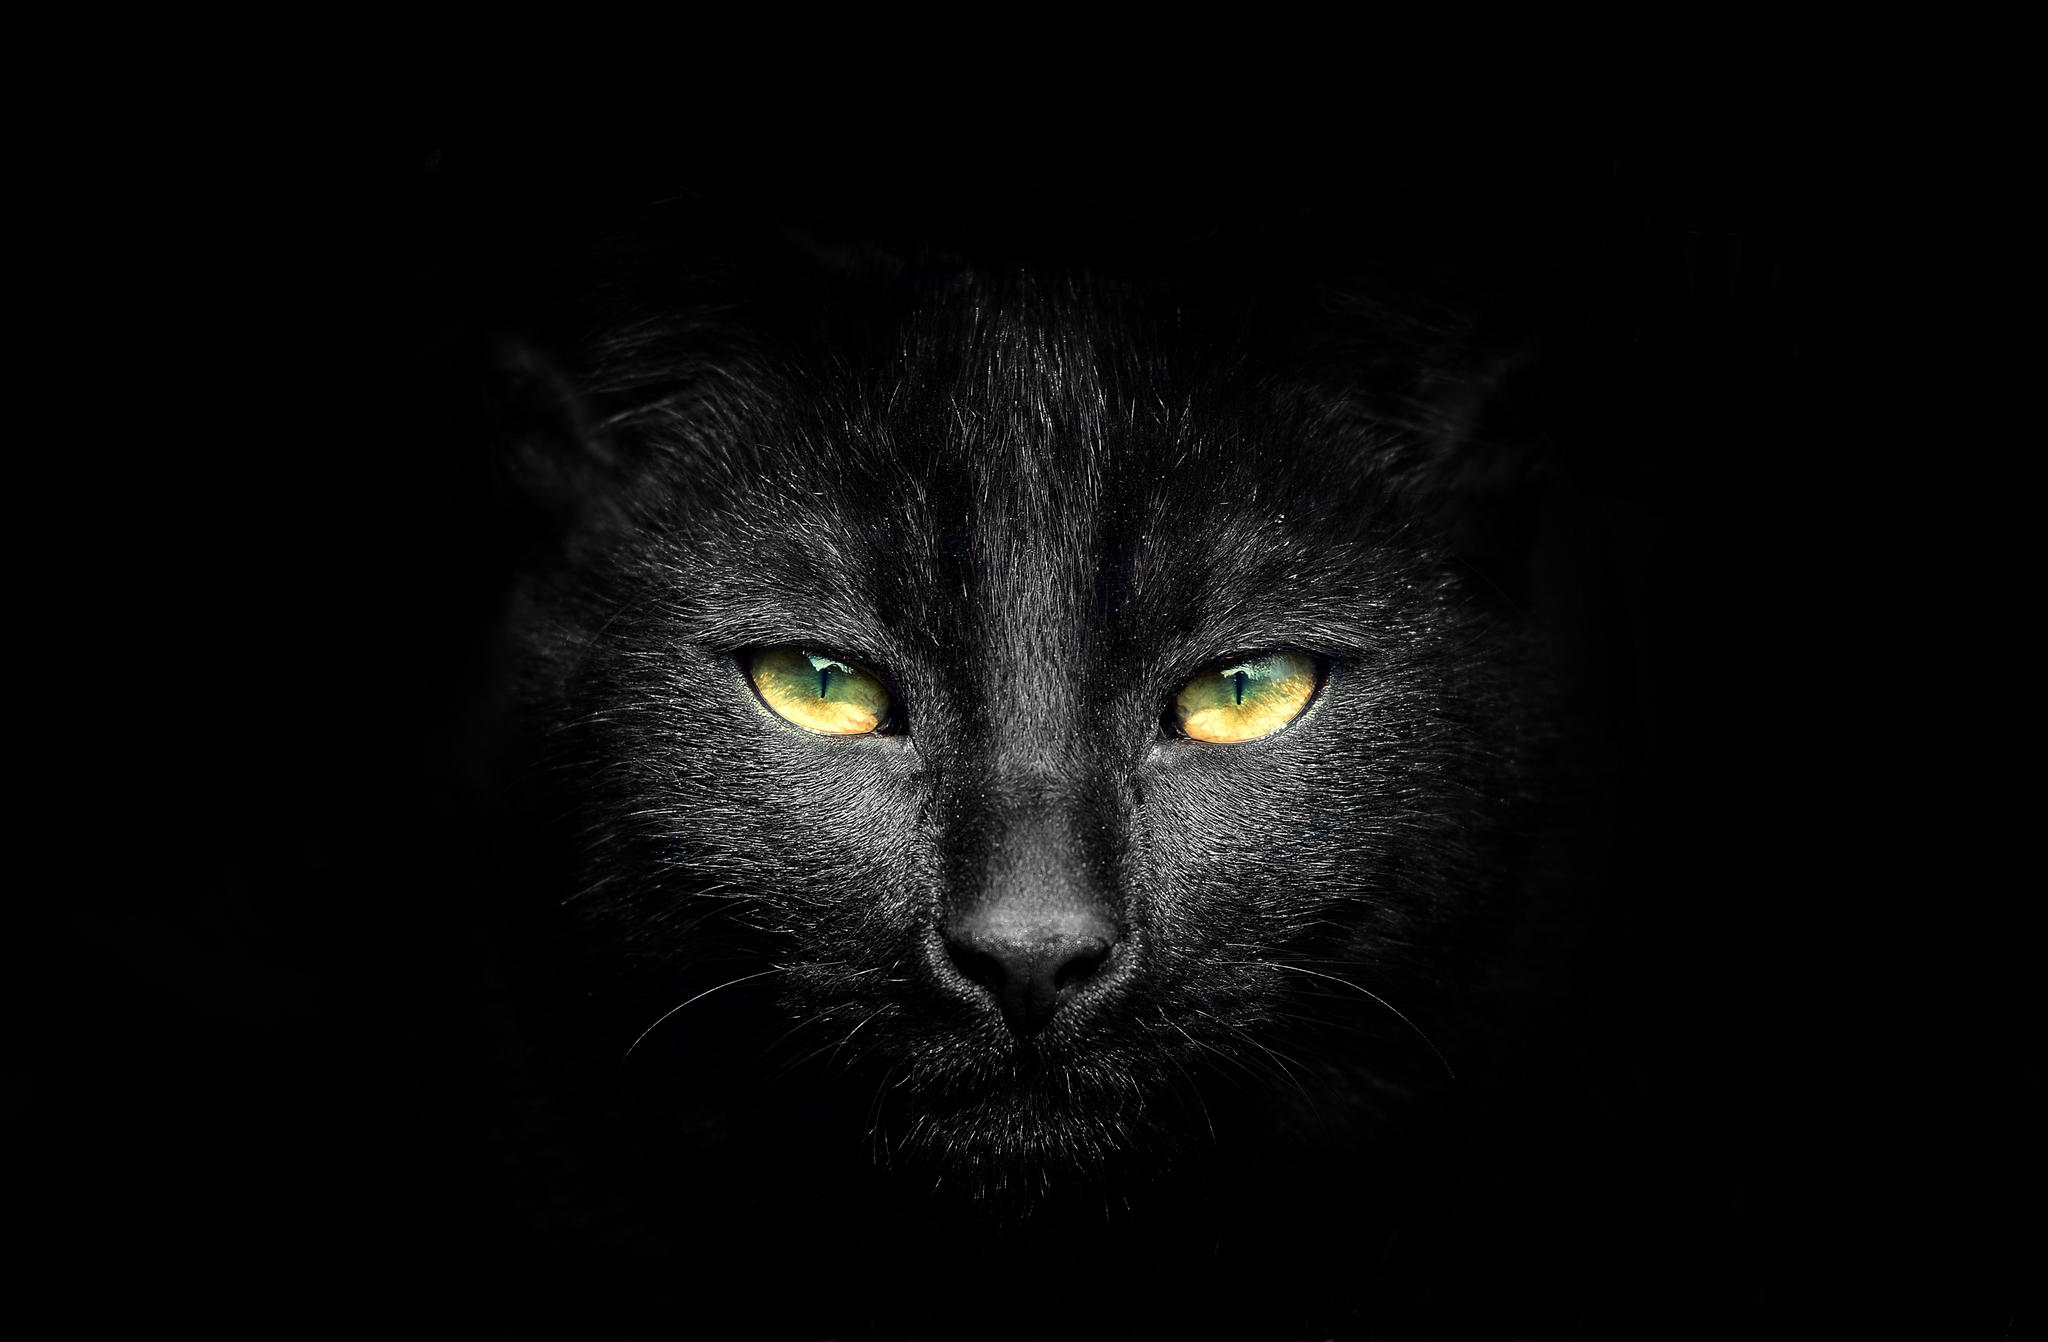 45 enchanting photos of beautiful black cats